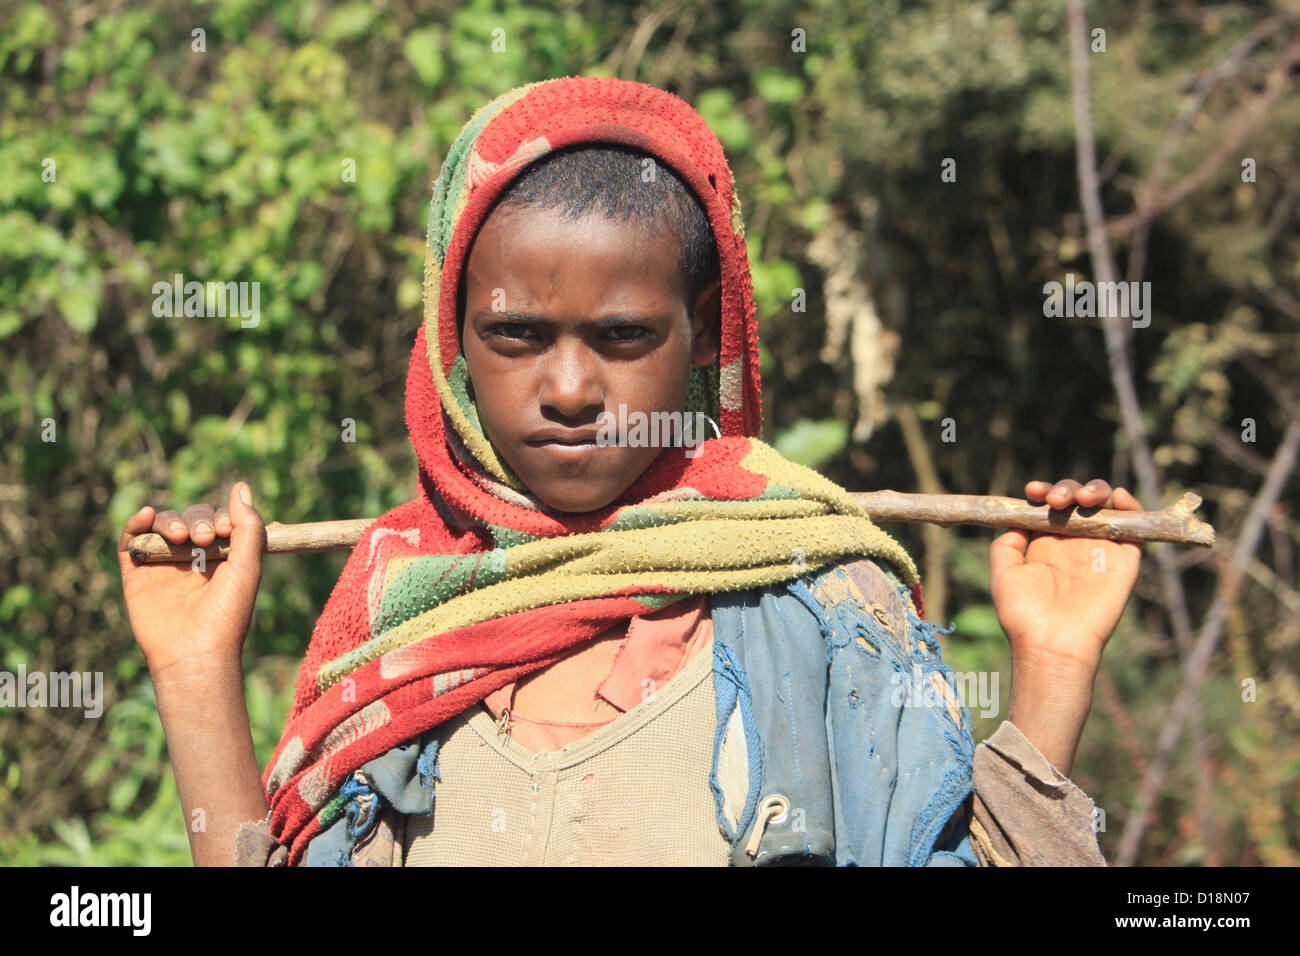 Africa, Ethiopia, Simien mountains portrait of a local boy - Stock Image